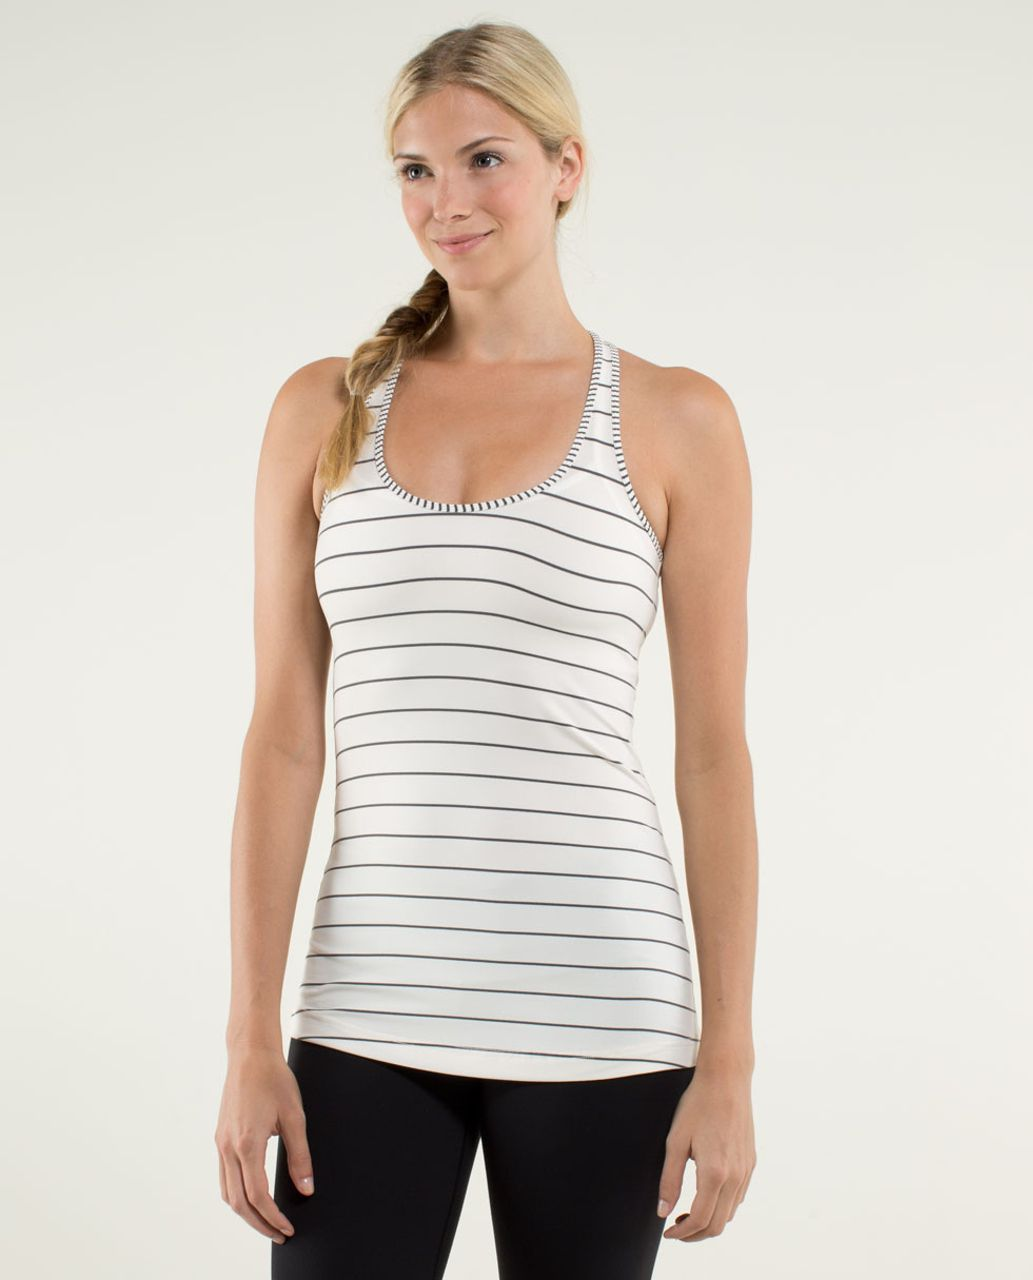 Lululemon Cool Racerback - Slalom Stripe Angel Wing / Hyper Stripe Angel Wing